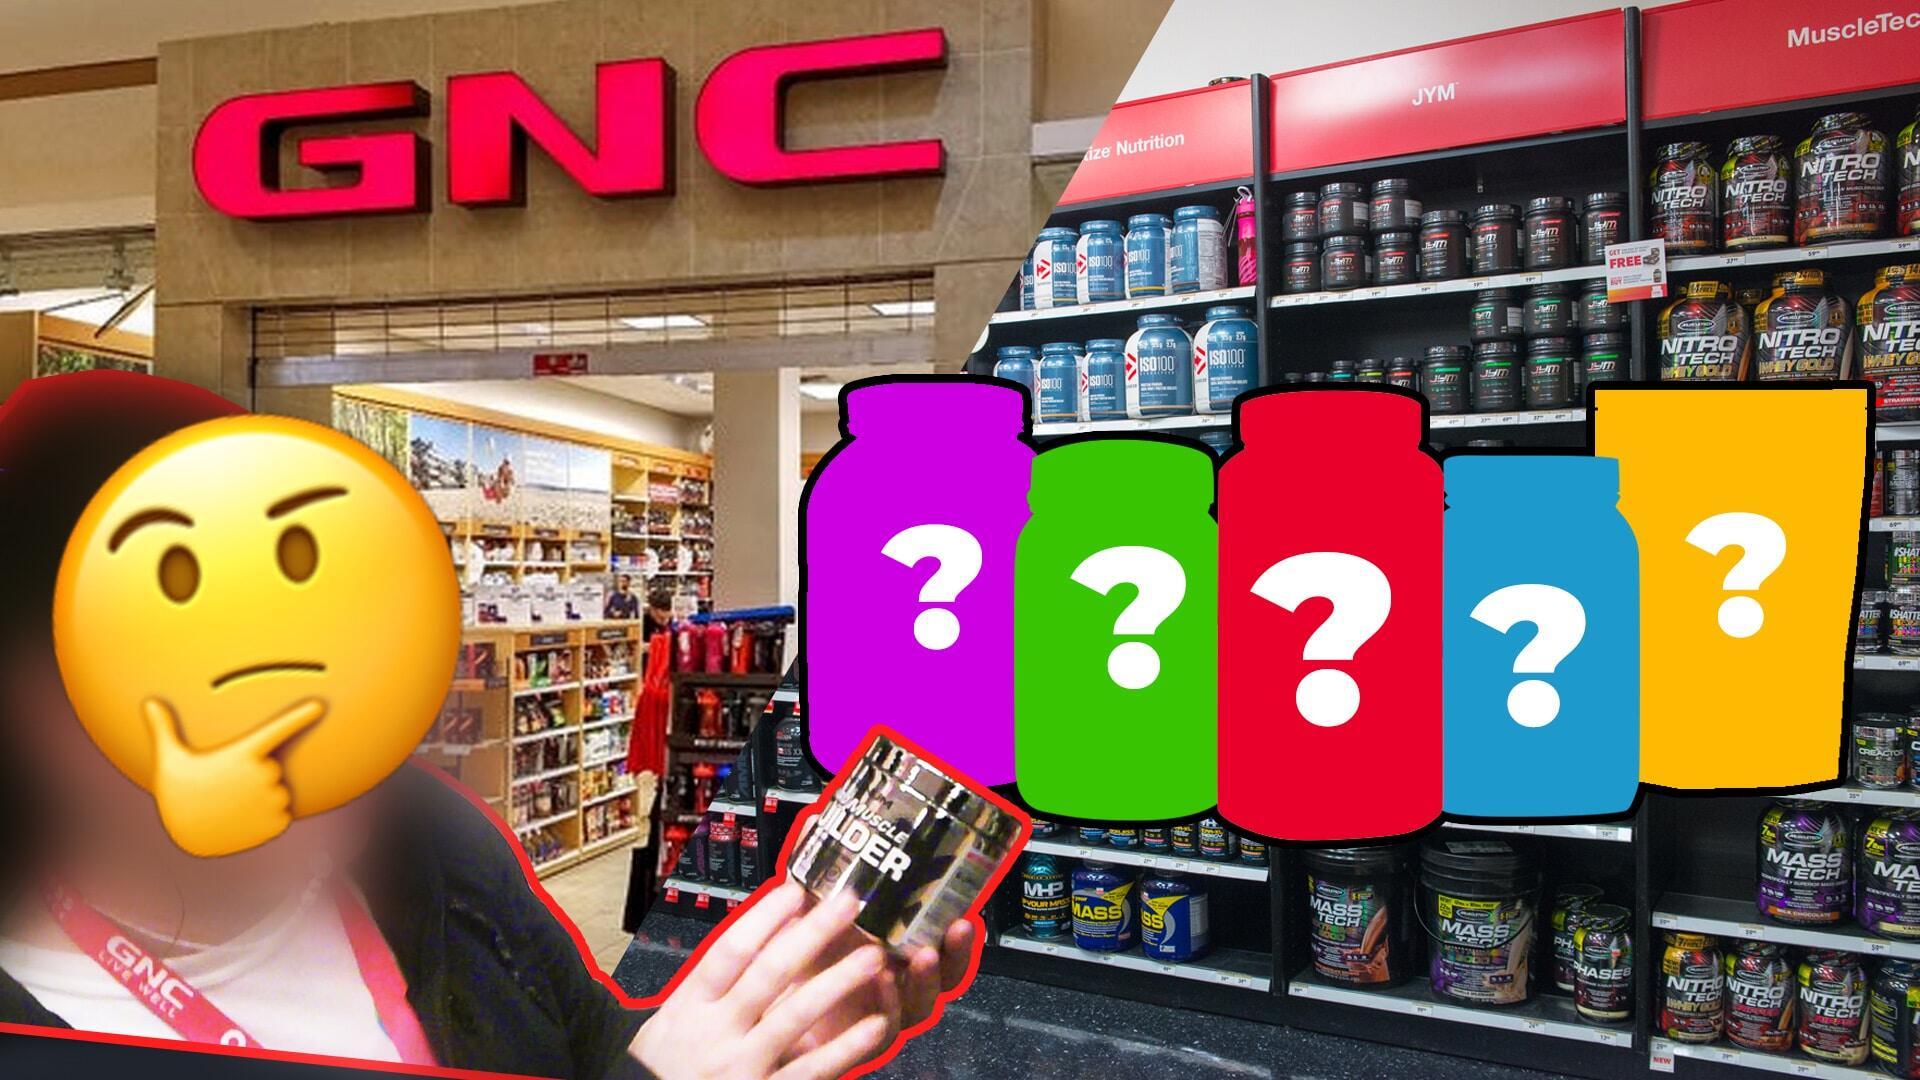 asking a gnc employee what supplements i should buy to get